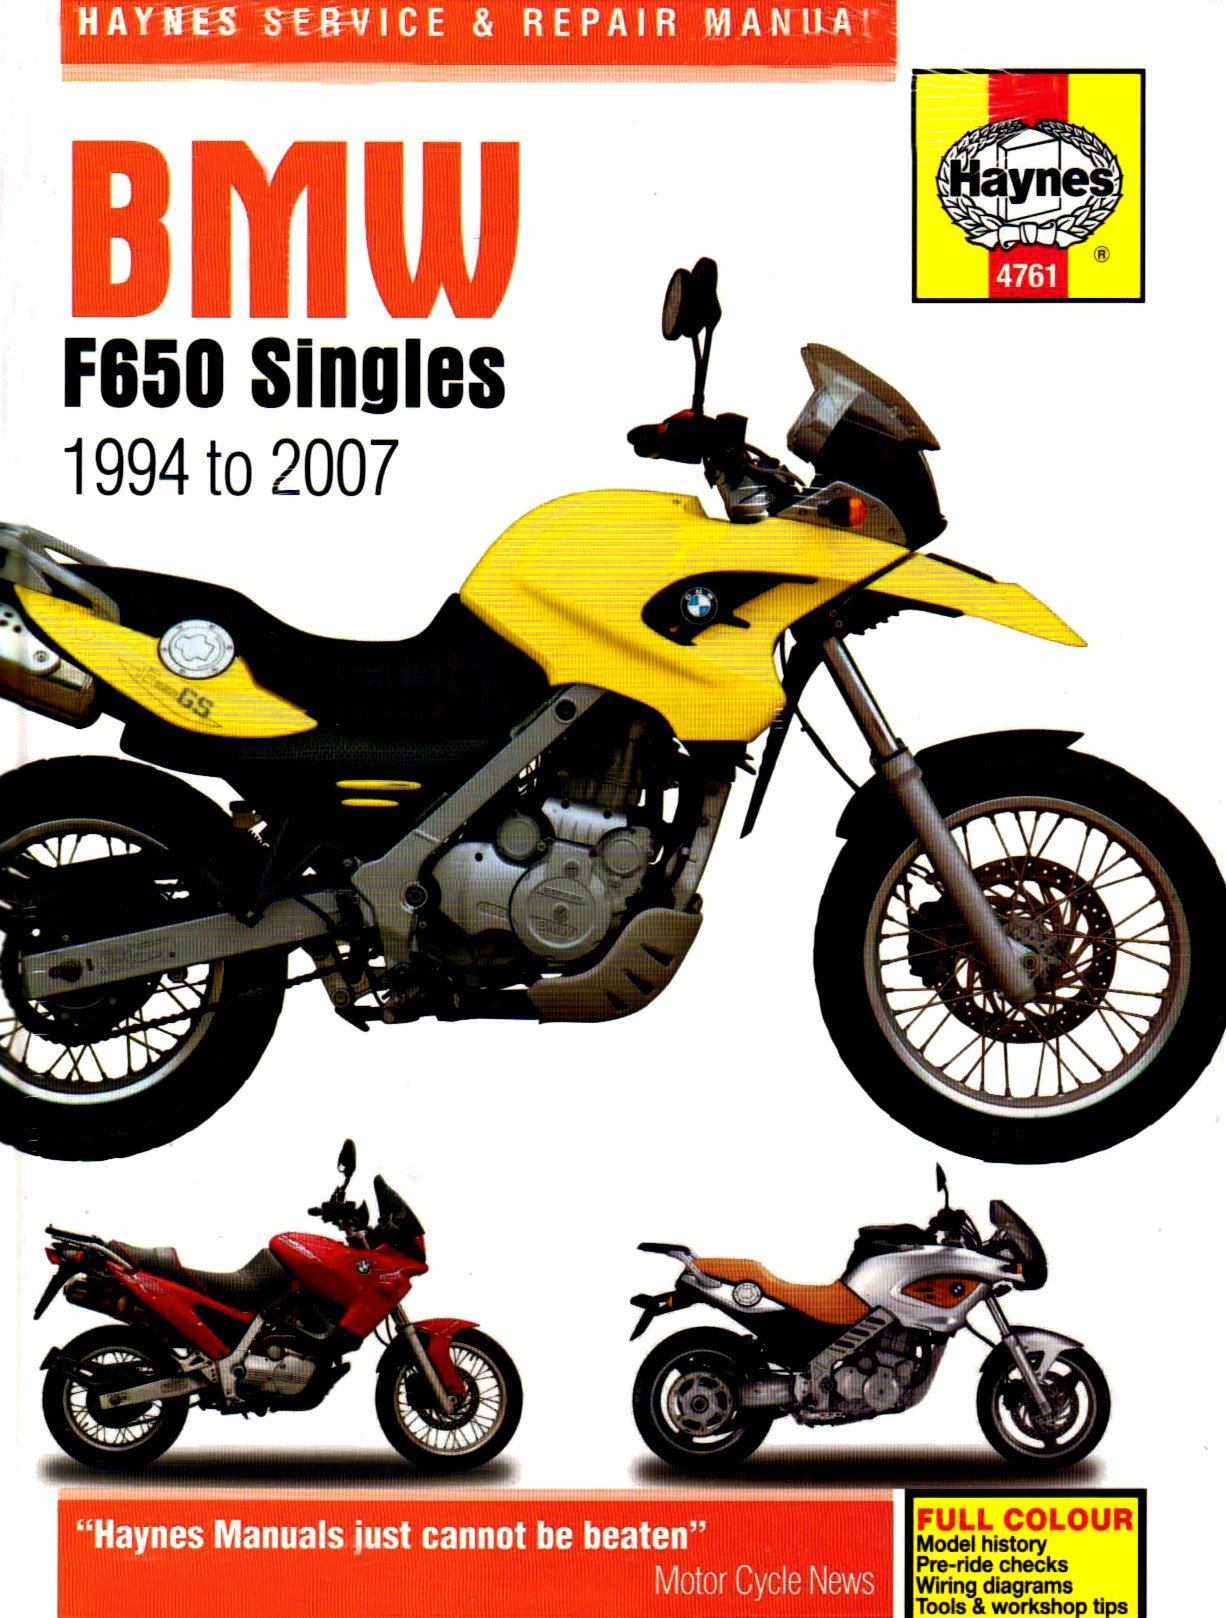 Haynes BMW F650 Singles Manual 4761: Haynes: 9781844257614: Amazon.com:  Books